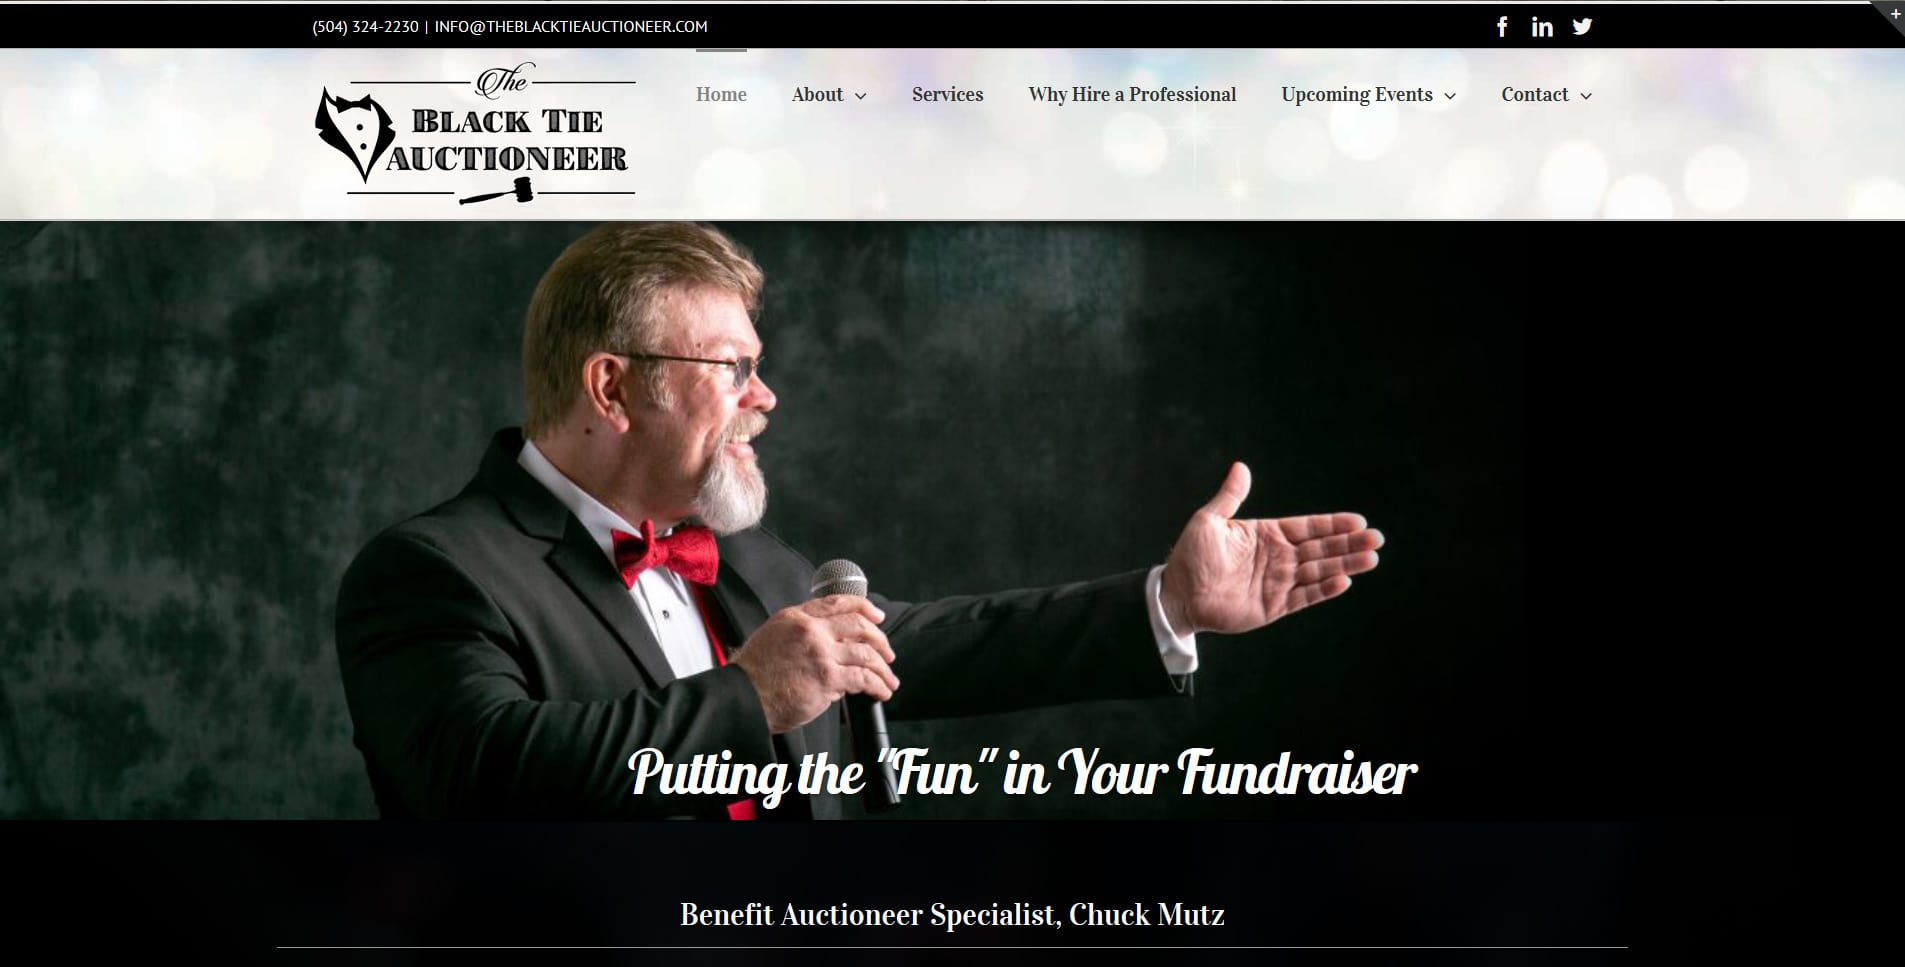 Black Tie Auctioneer